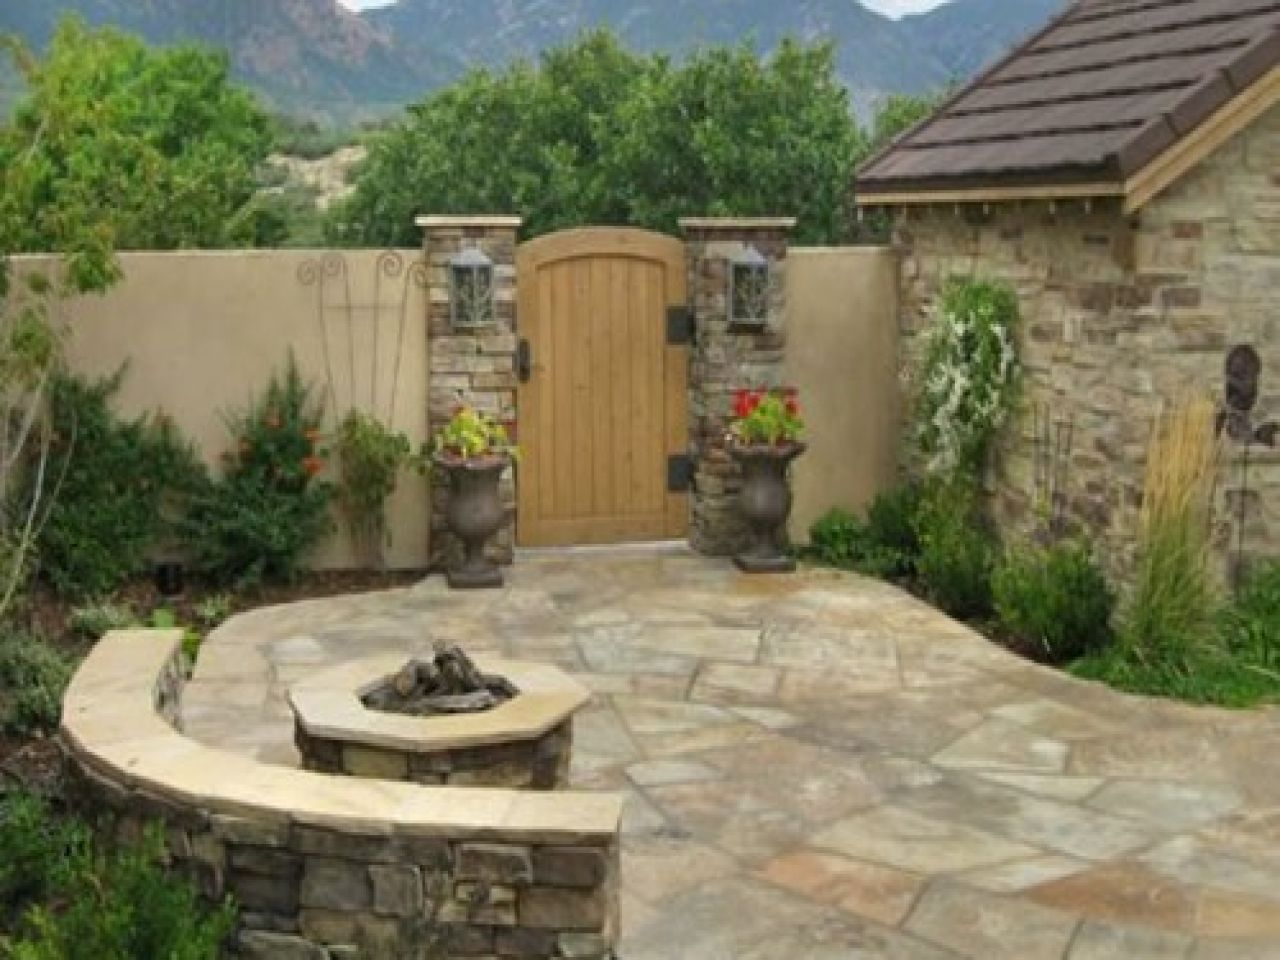 Flagstone Patio For Decorating Your Porch Floor: Rock Flagstone ...